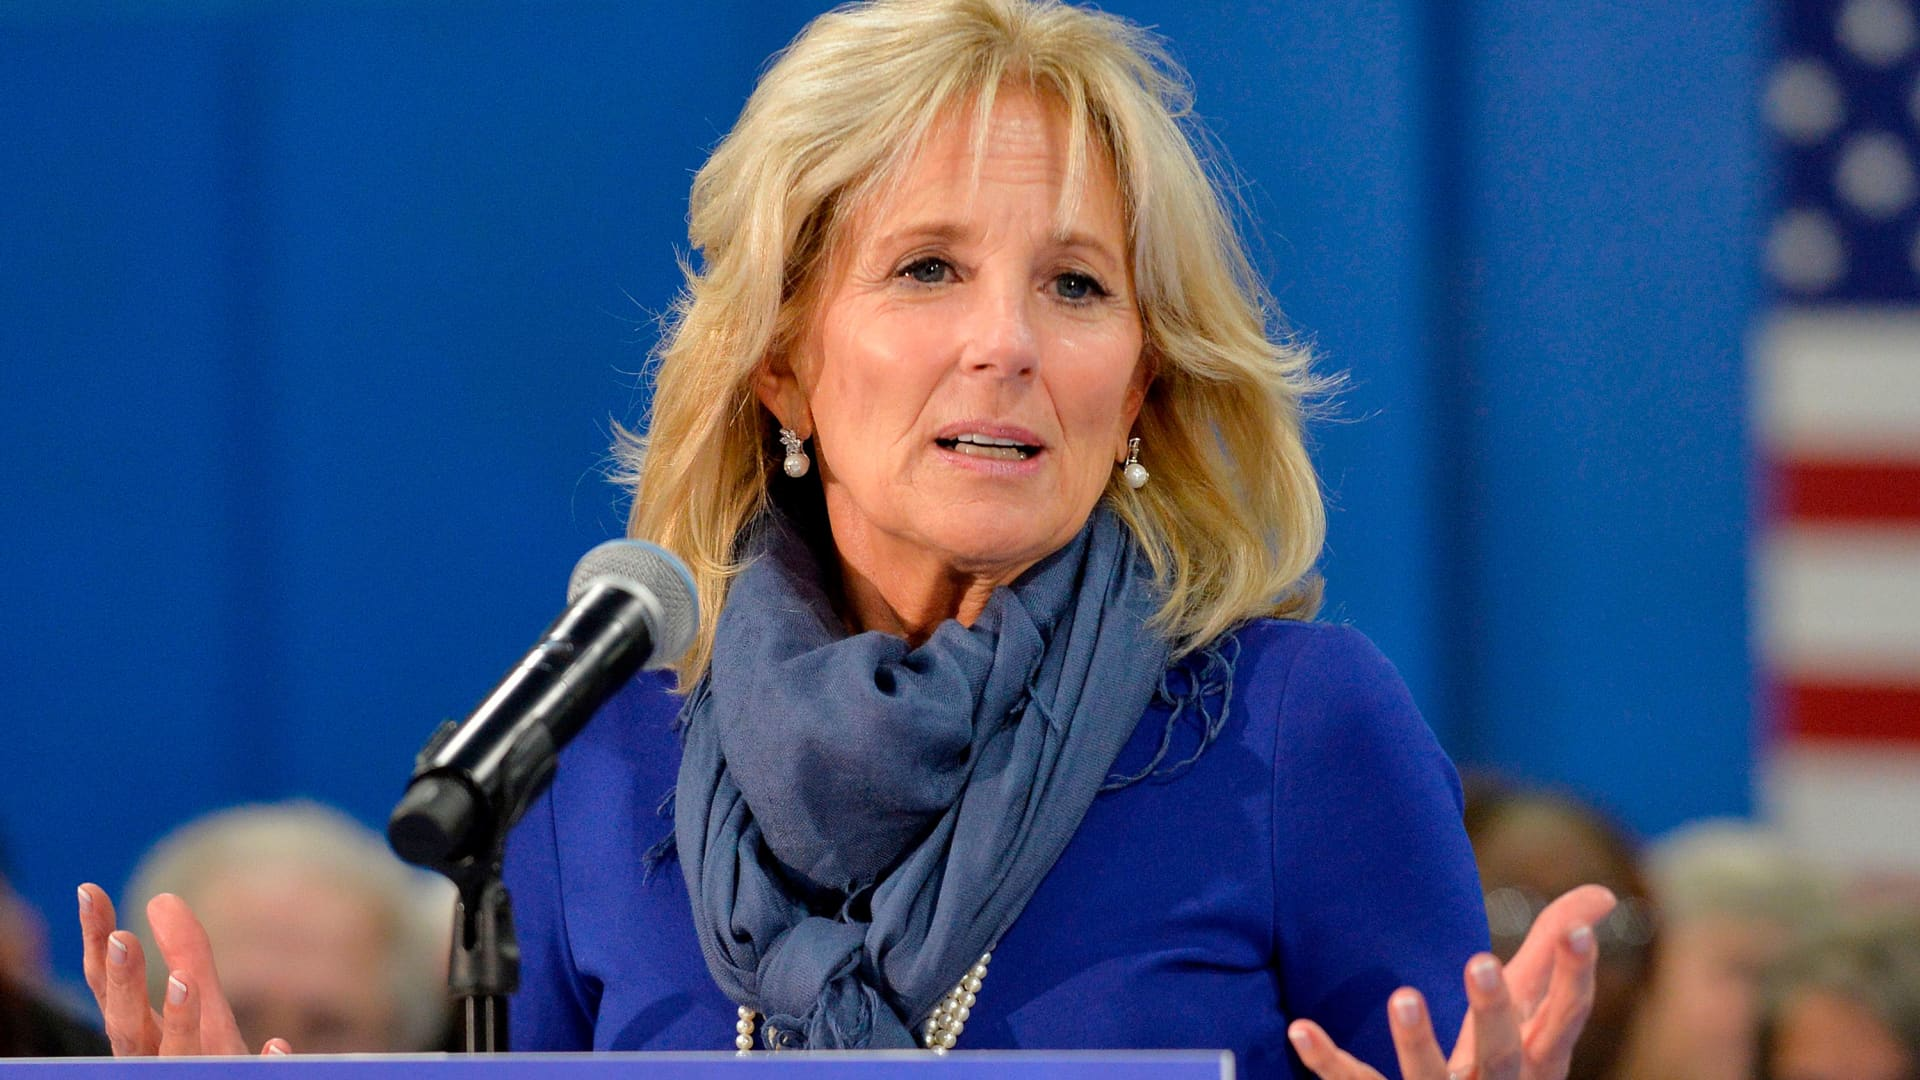 Dr. Jill Biden introduces her husband democratic presidential hopeful former US Vice President Joe Biden during a town hall at the Proulx Community Center in Franklin, New Hampshire on November 8, 2019.